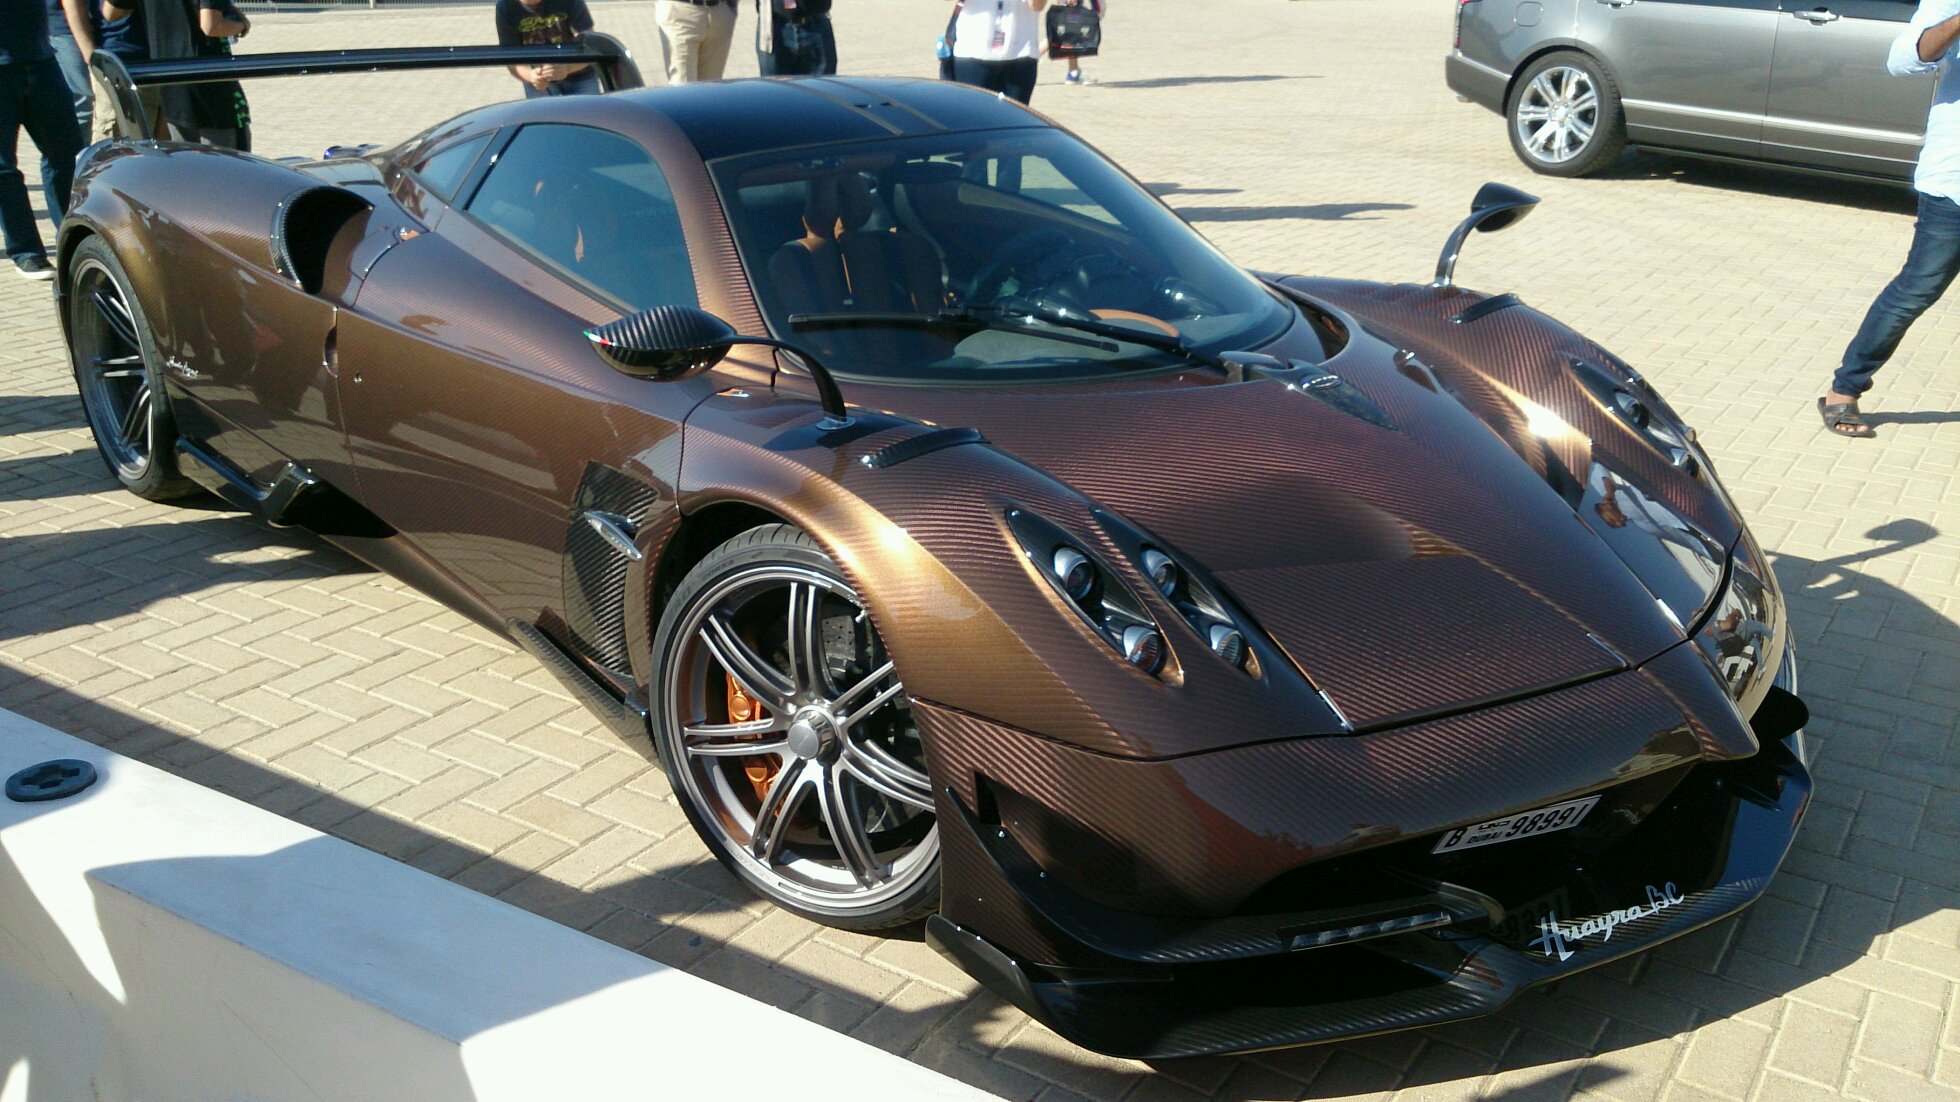 Pagani Huayra BC spotted in Dubai Autodrome during the 24H Hankook